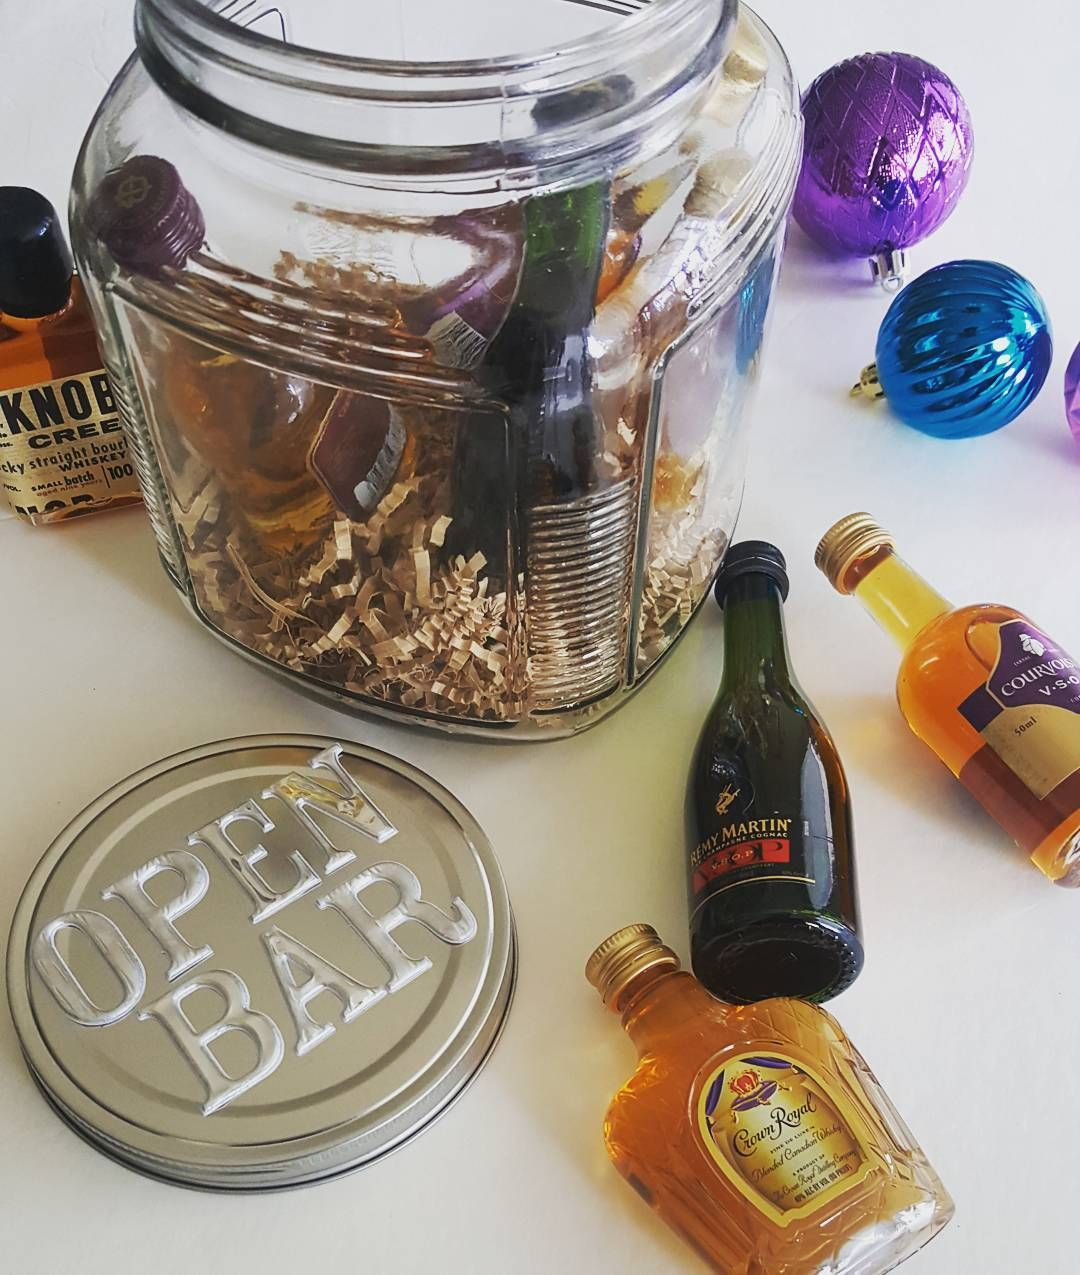 Pinterest Did Not Disappoint Re Creative Gift Ideas Mini Bar In A Jar Is My New Fave Get Excited For Your Birt Mason Jar Gifts Creative Gifts Christmas Jars